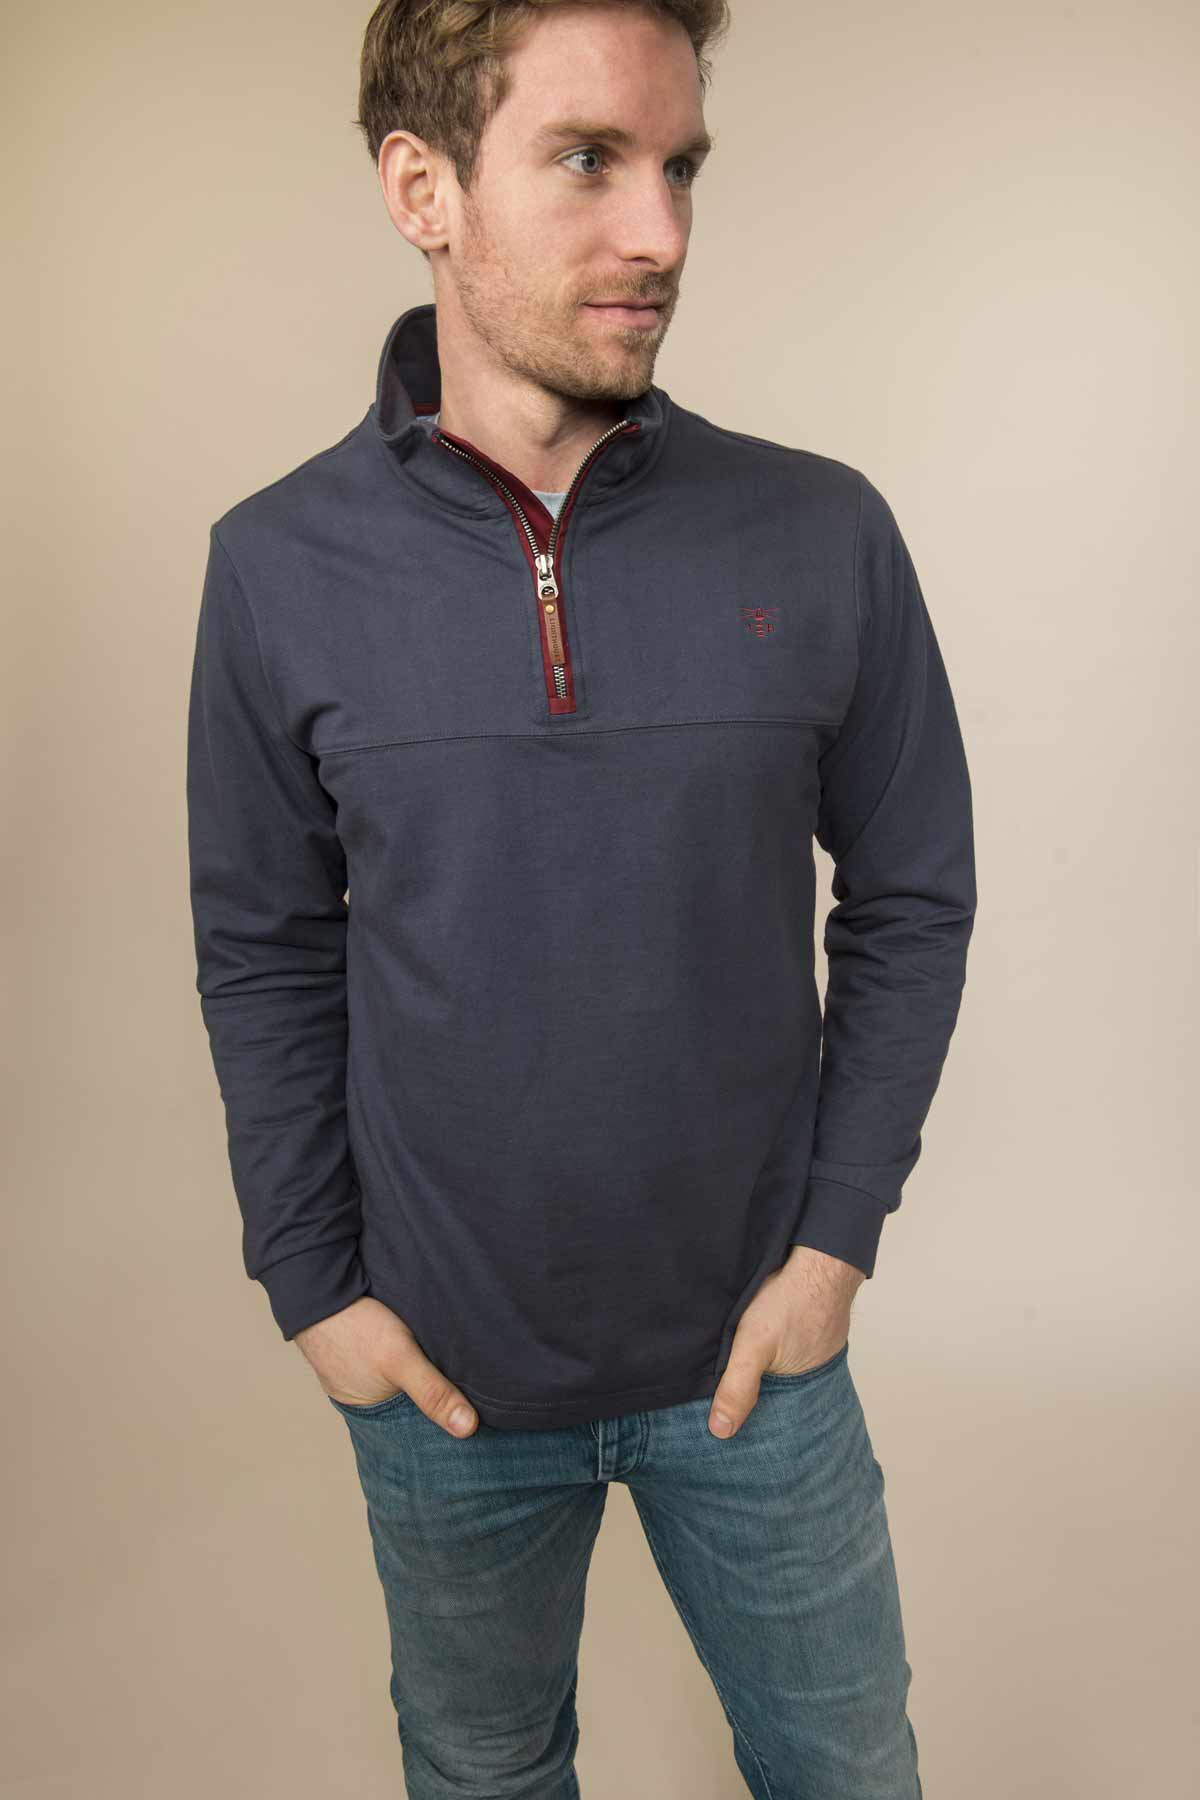 Lighthouse Seafarer men's navy sweater